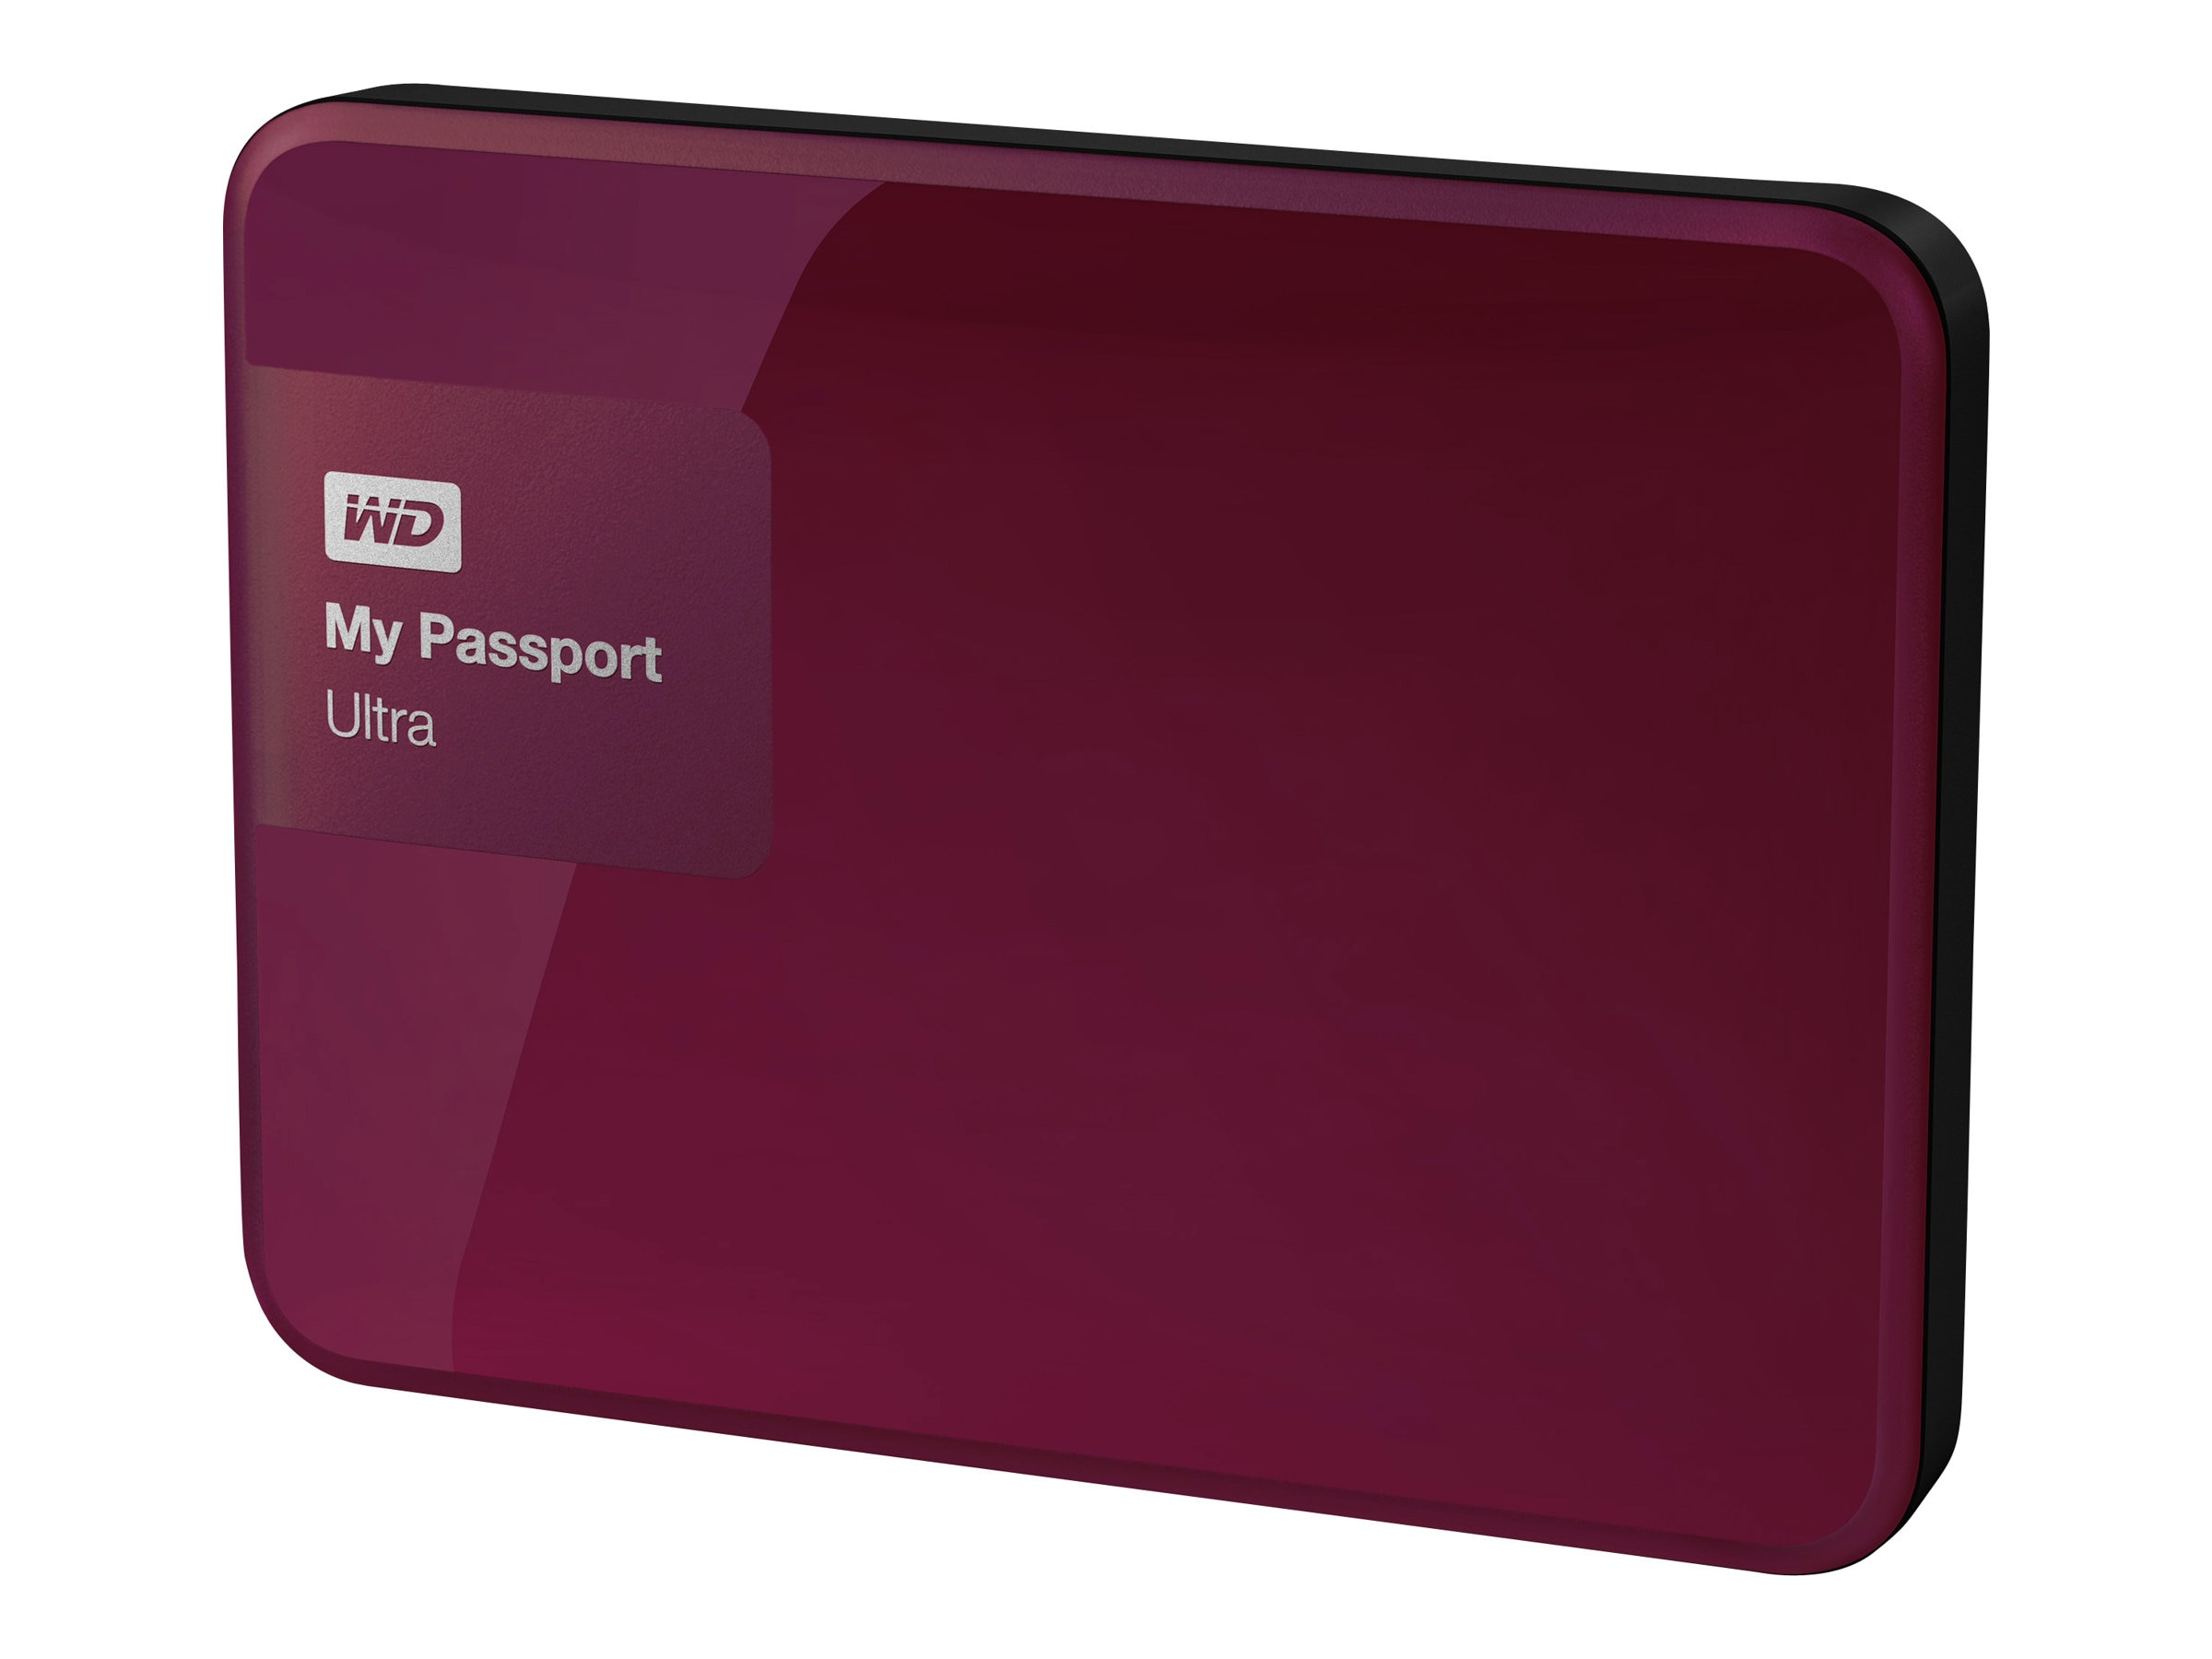 WD 1TB My Passport Ultra Portable Hard Drive - Berry, WDBGPU0010BBY-NESN